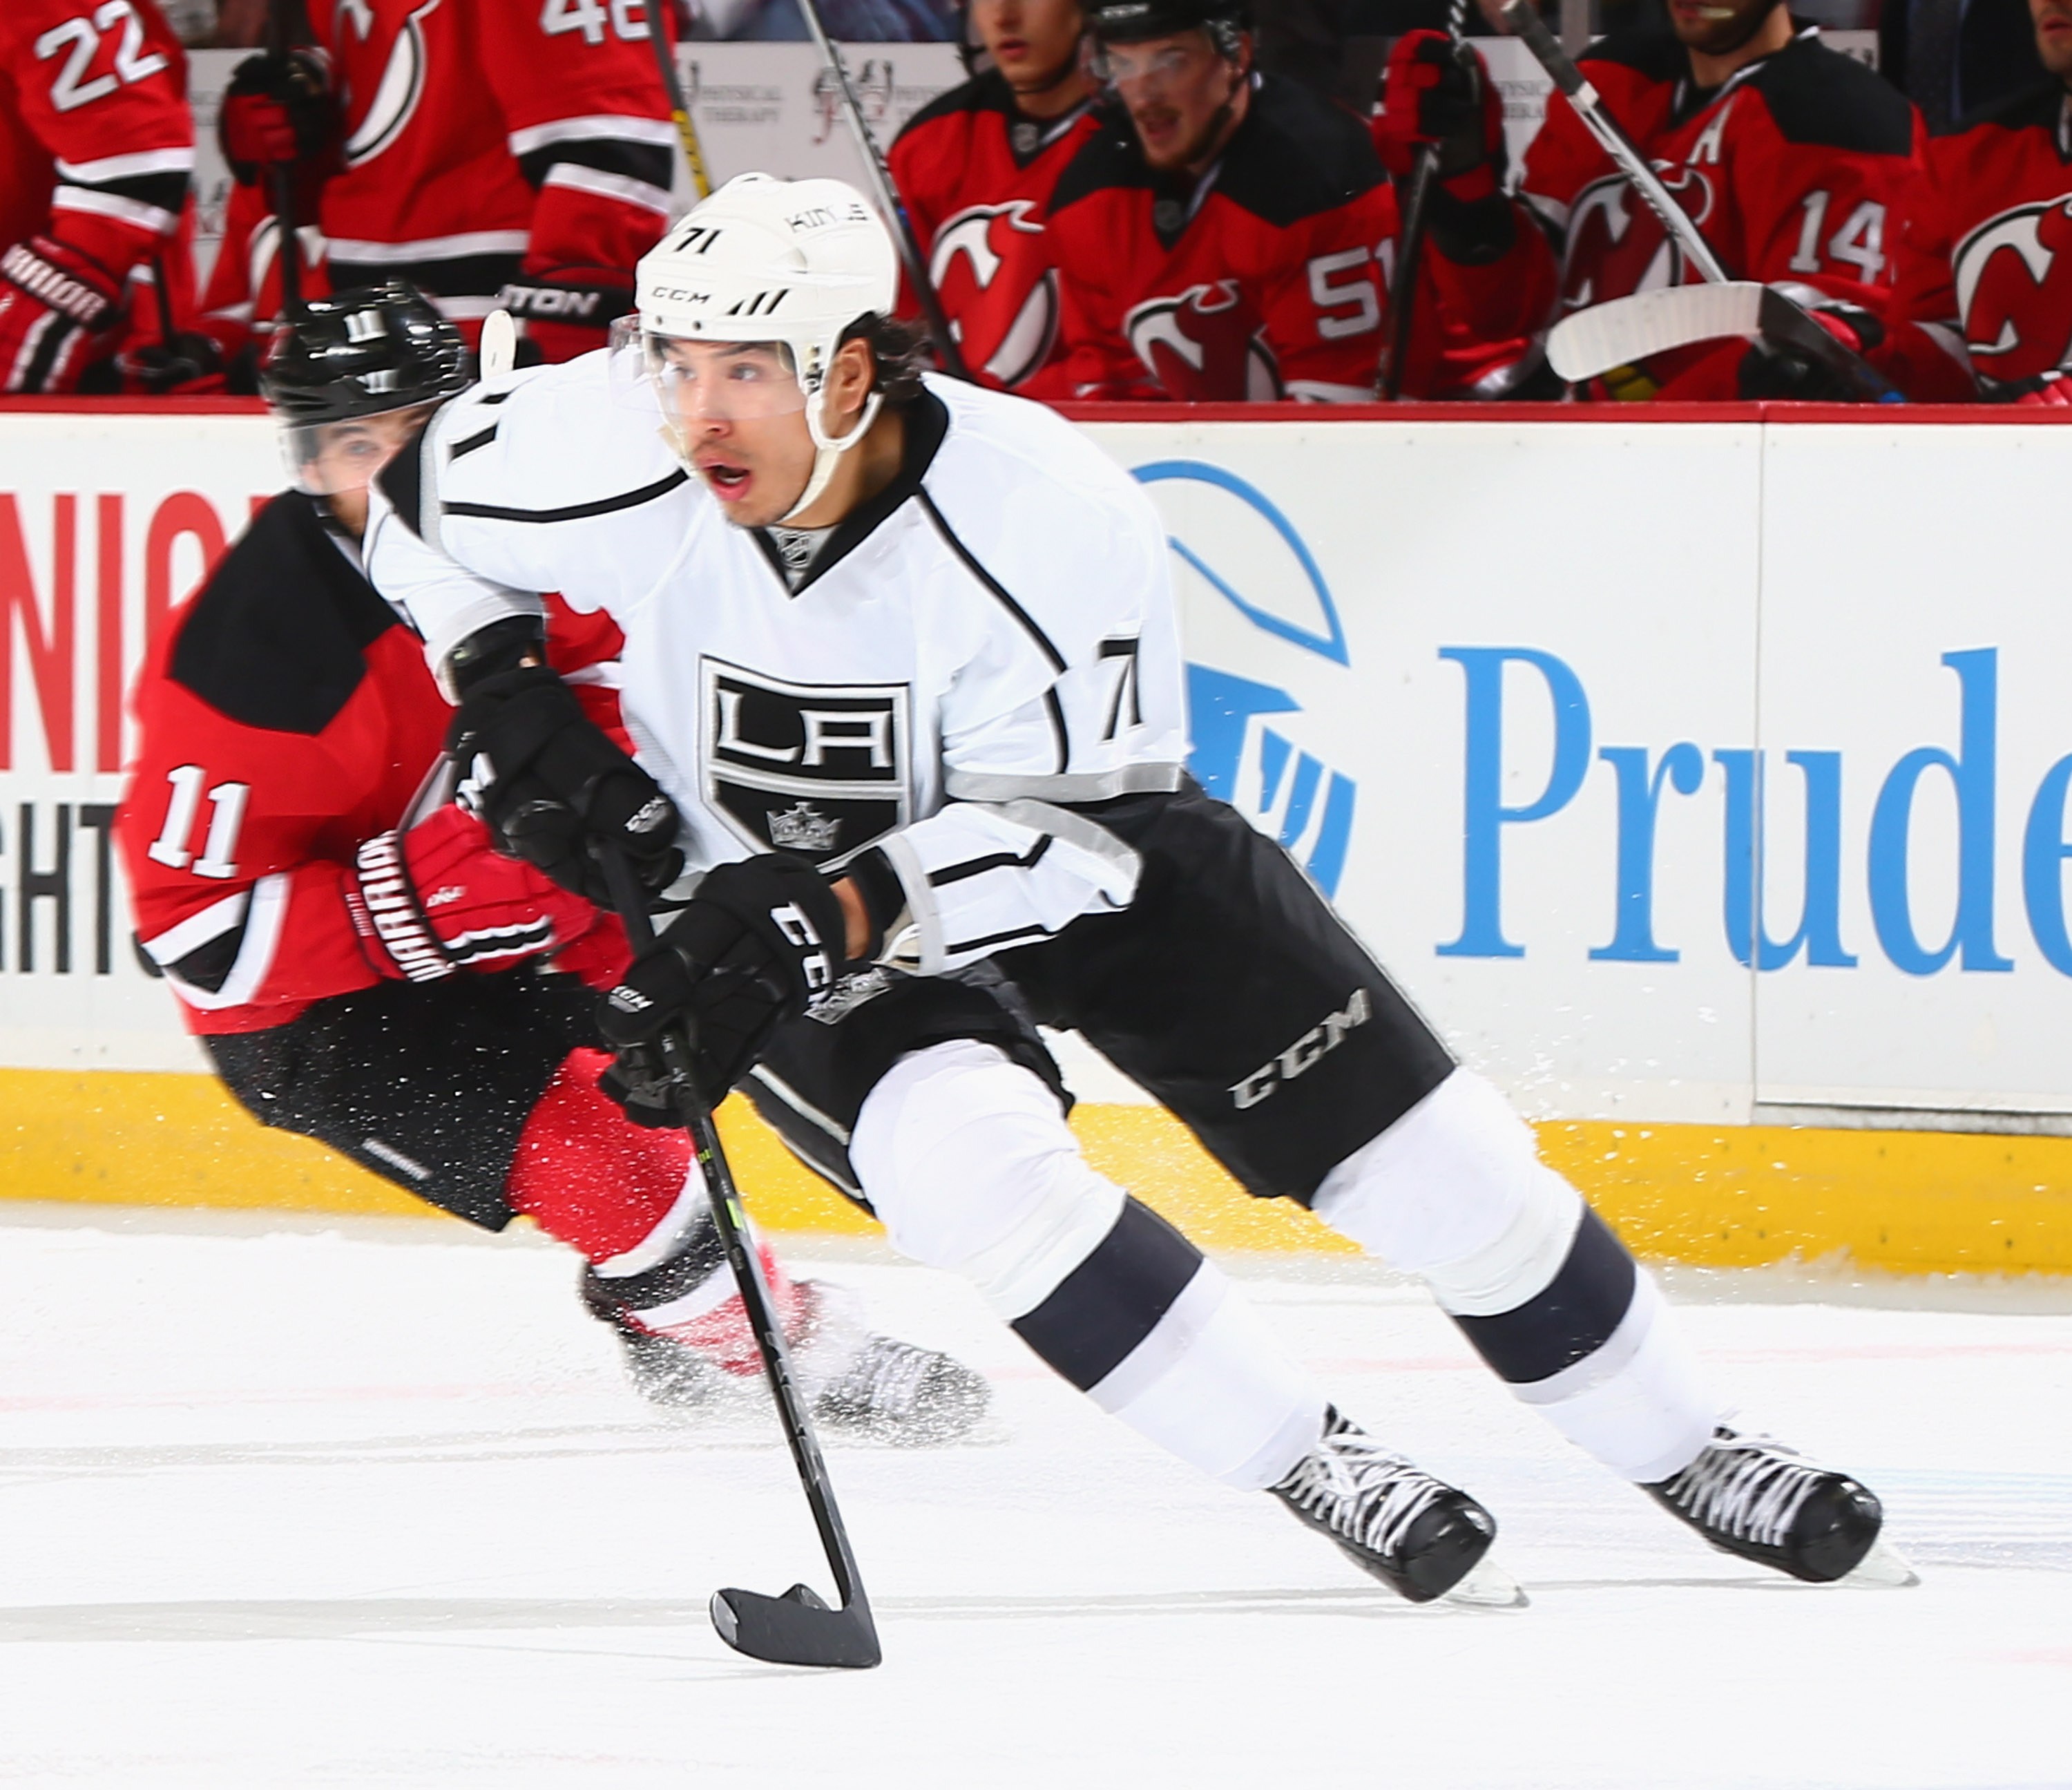 Los Angeles Kings v New Jersey Devils